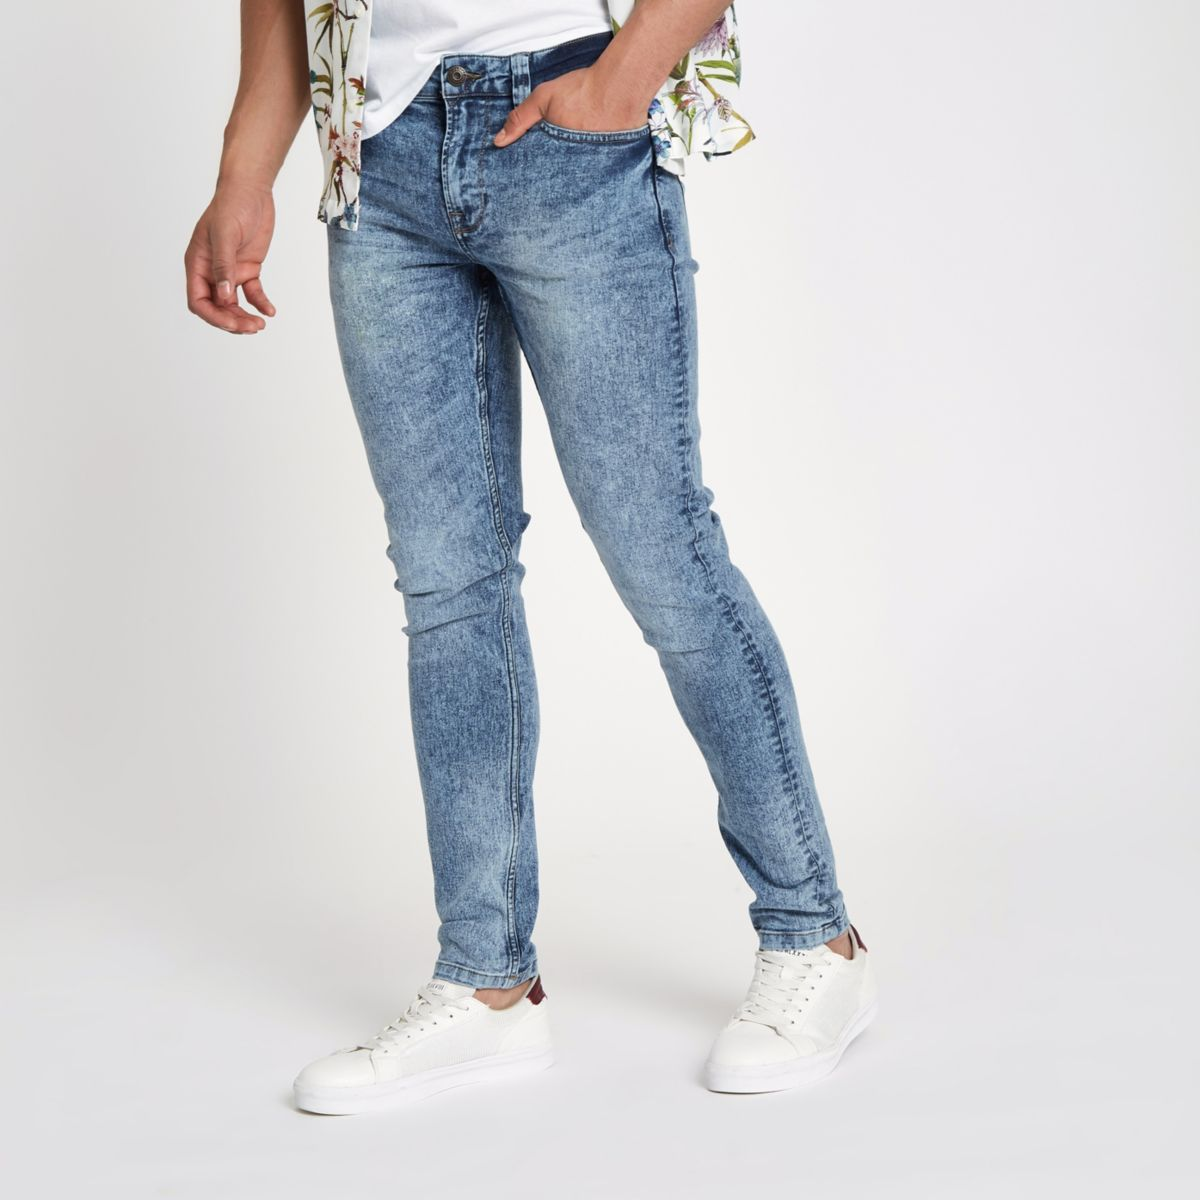 Only & Sons mid blue skinny jeans